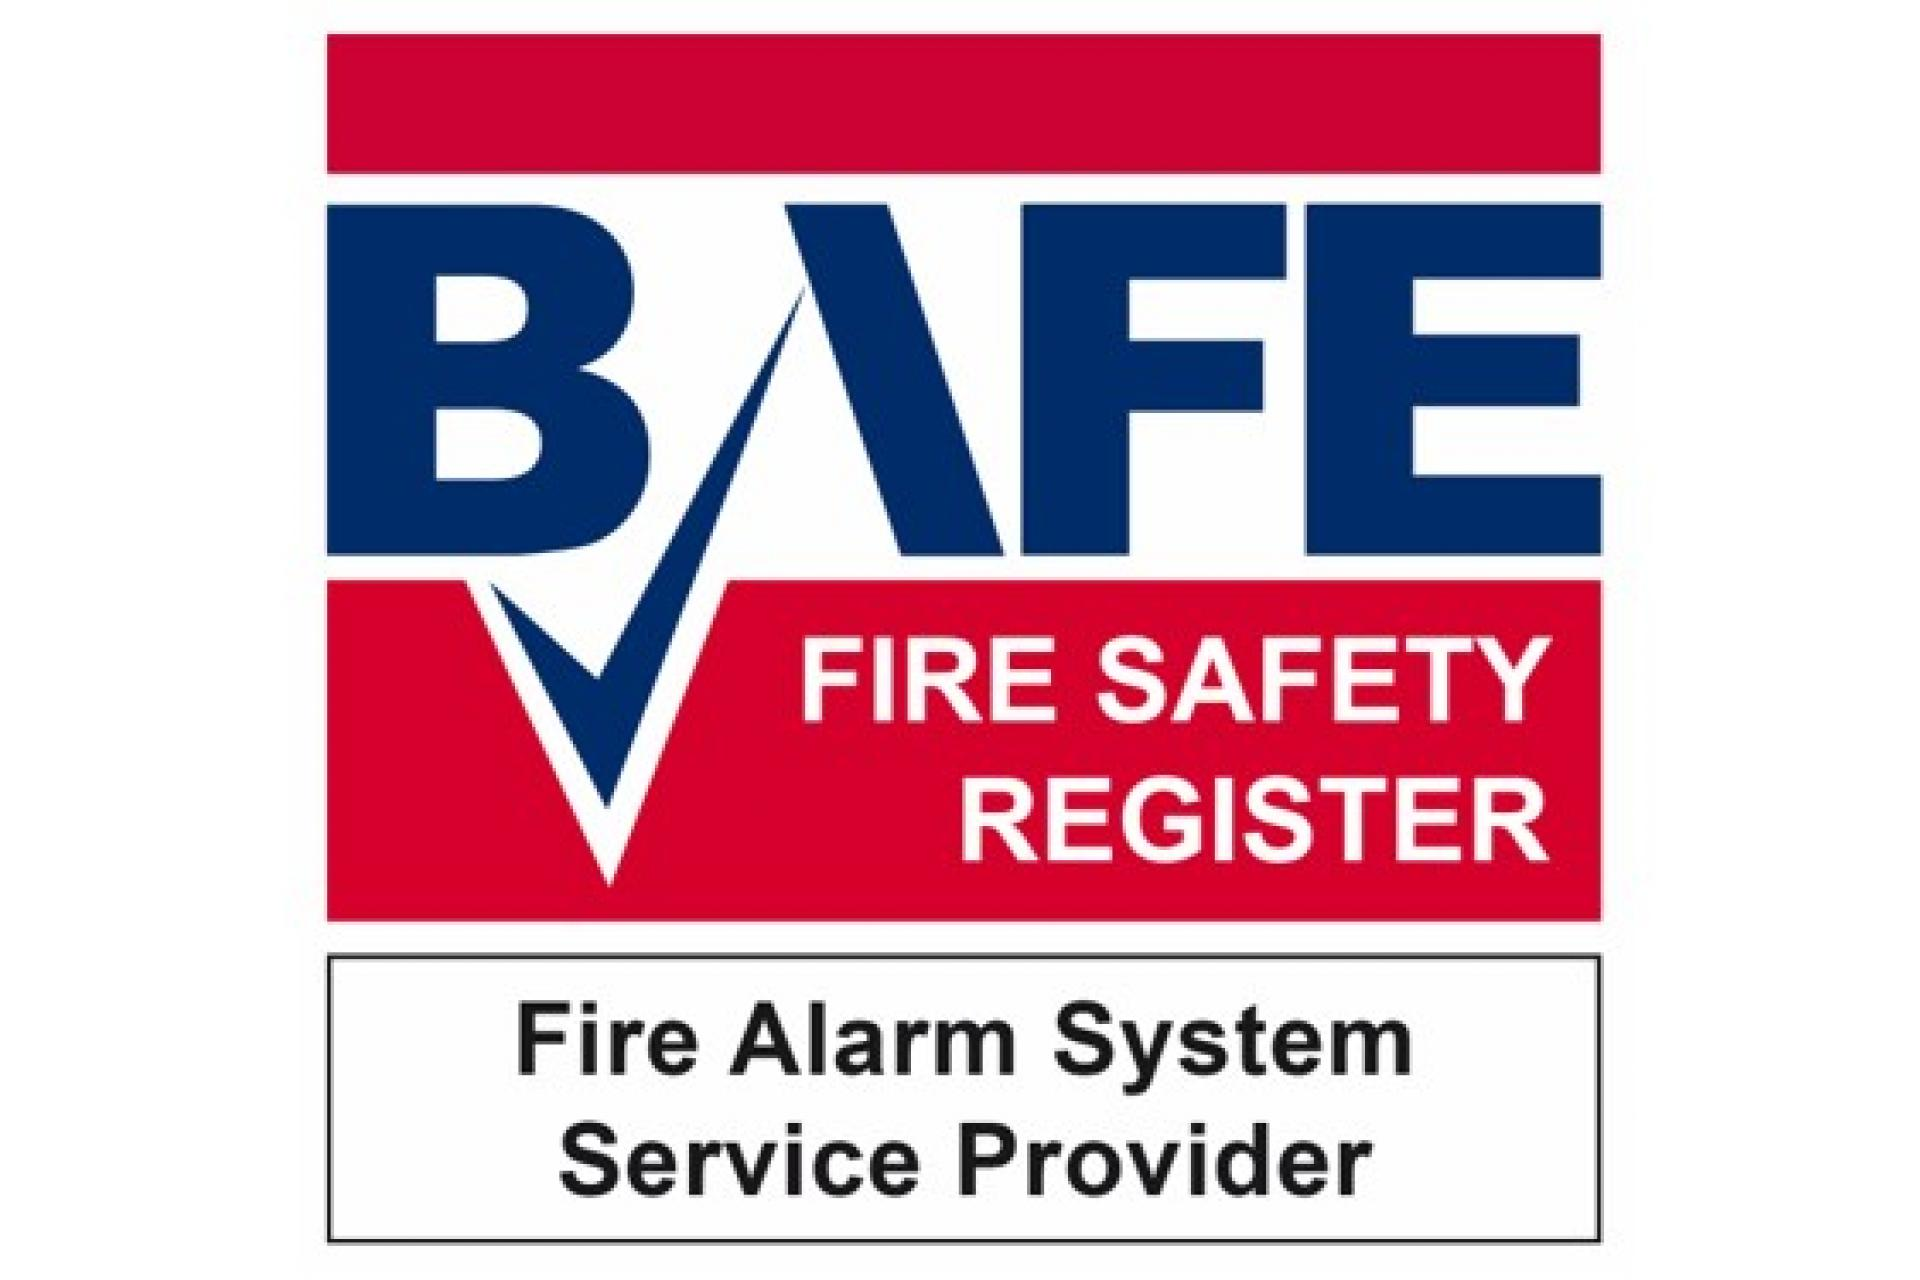 BAFE fire safety accreditation